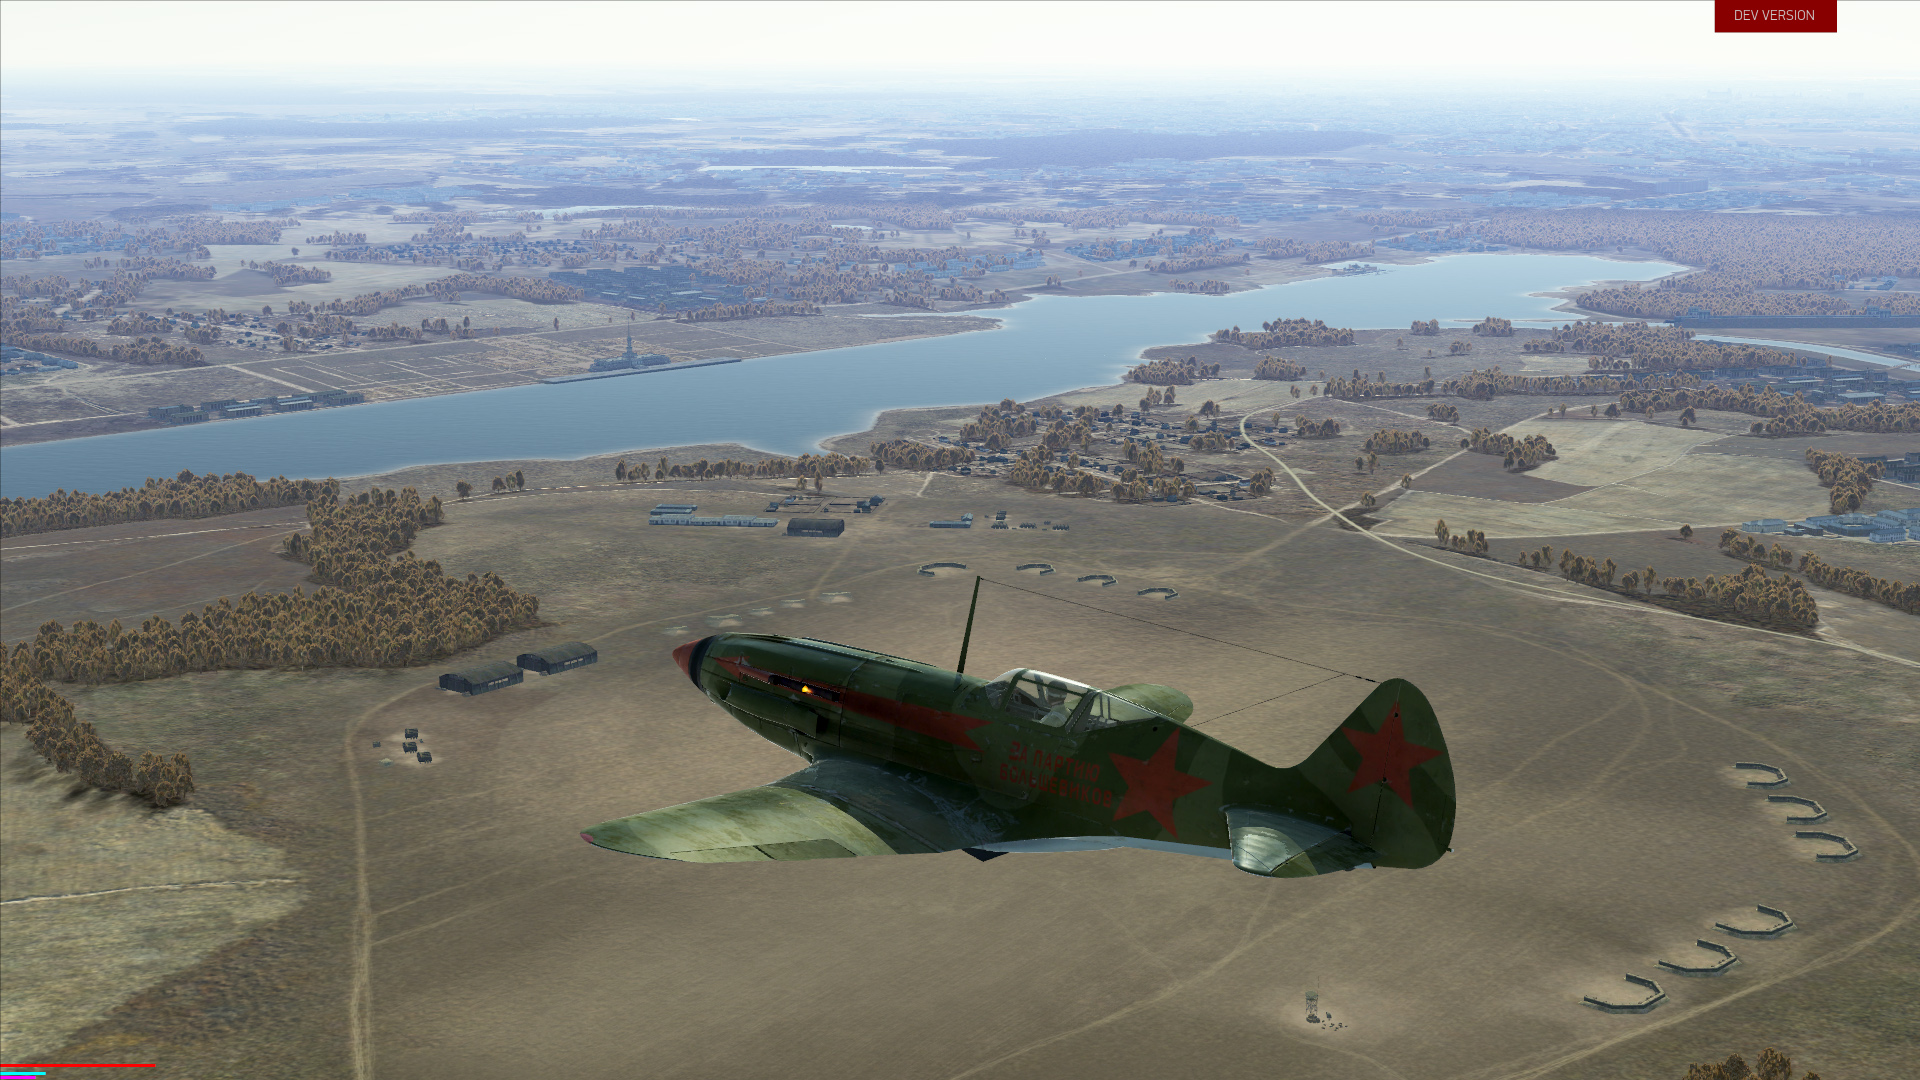 http://forum.il2sturmovik.ru/uploads/monthly_03_2016/post-12-0-50892300-1458212600.jpg